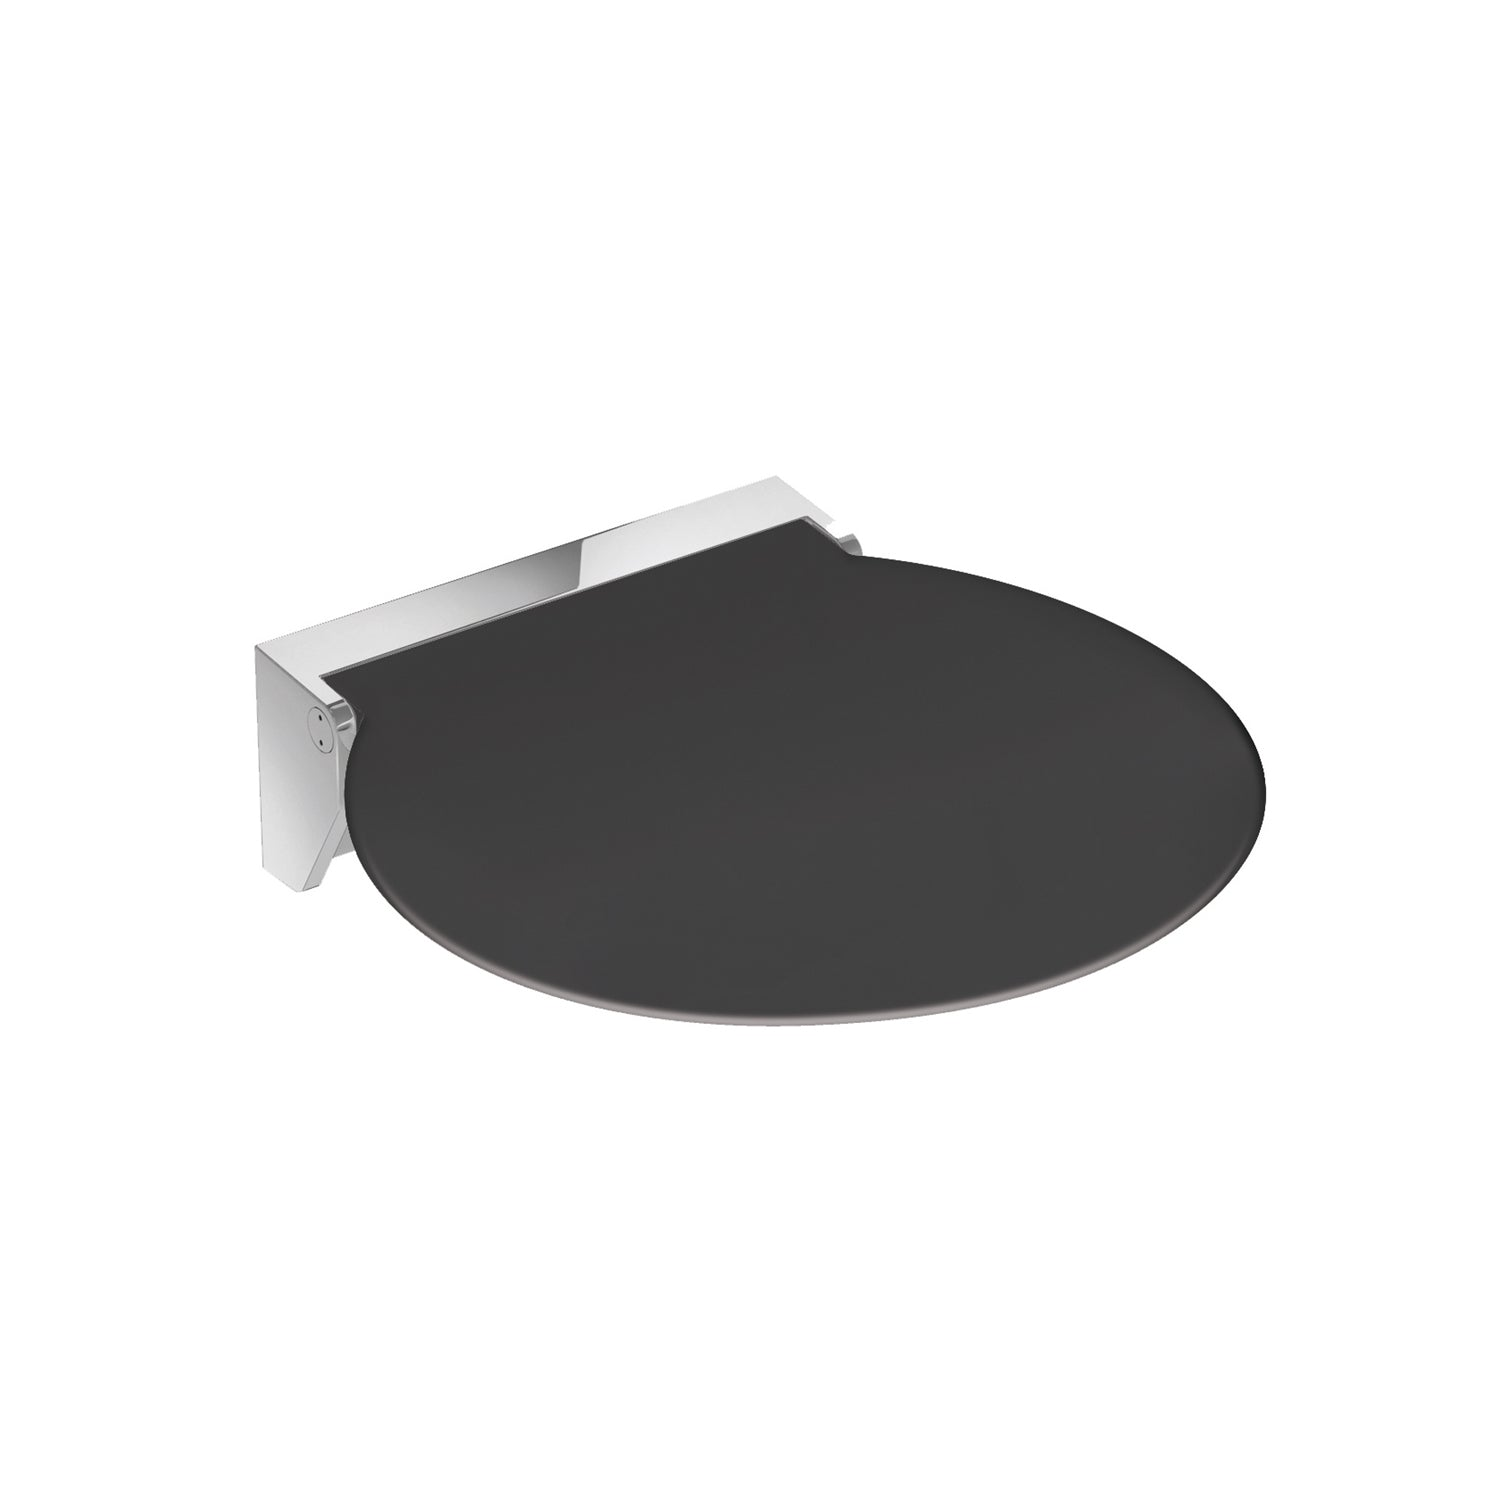 Circula Shower Seat with an anthracite grey seat and chrome bracket on a white background